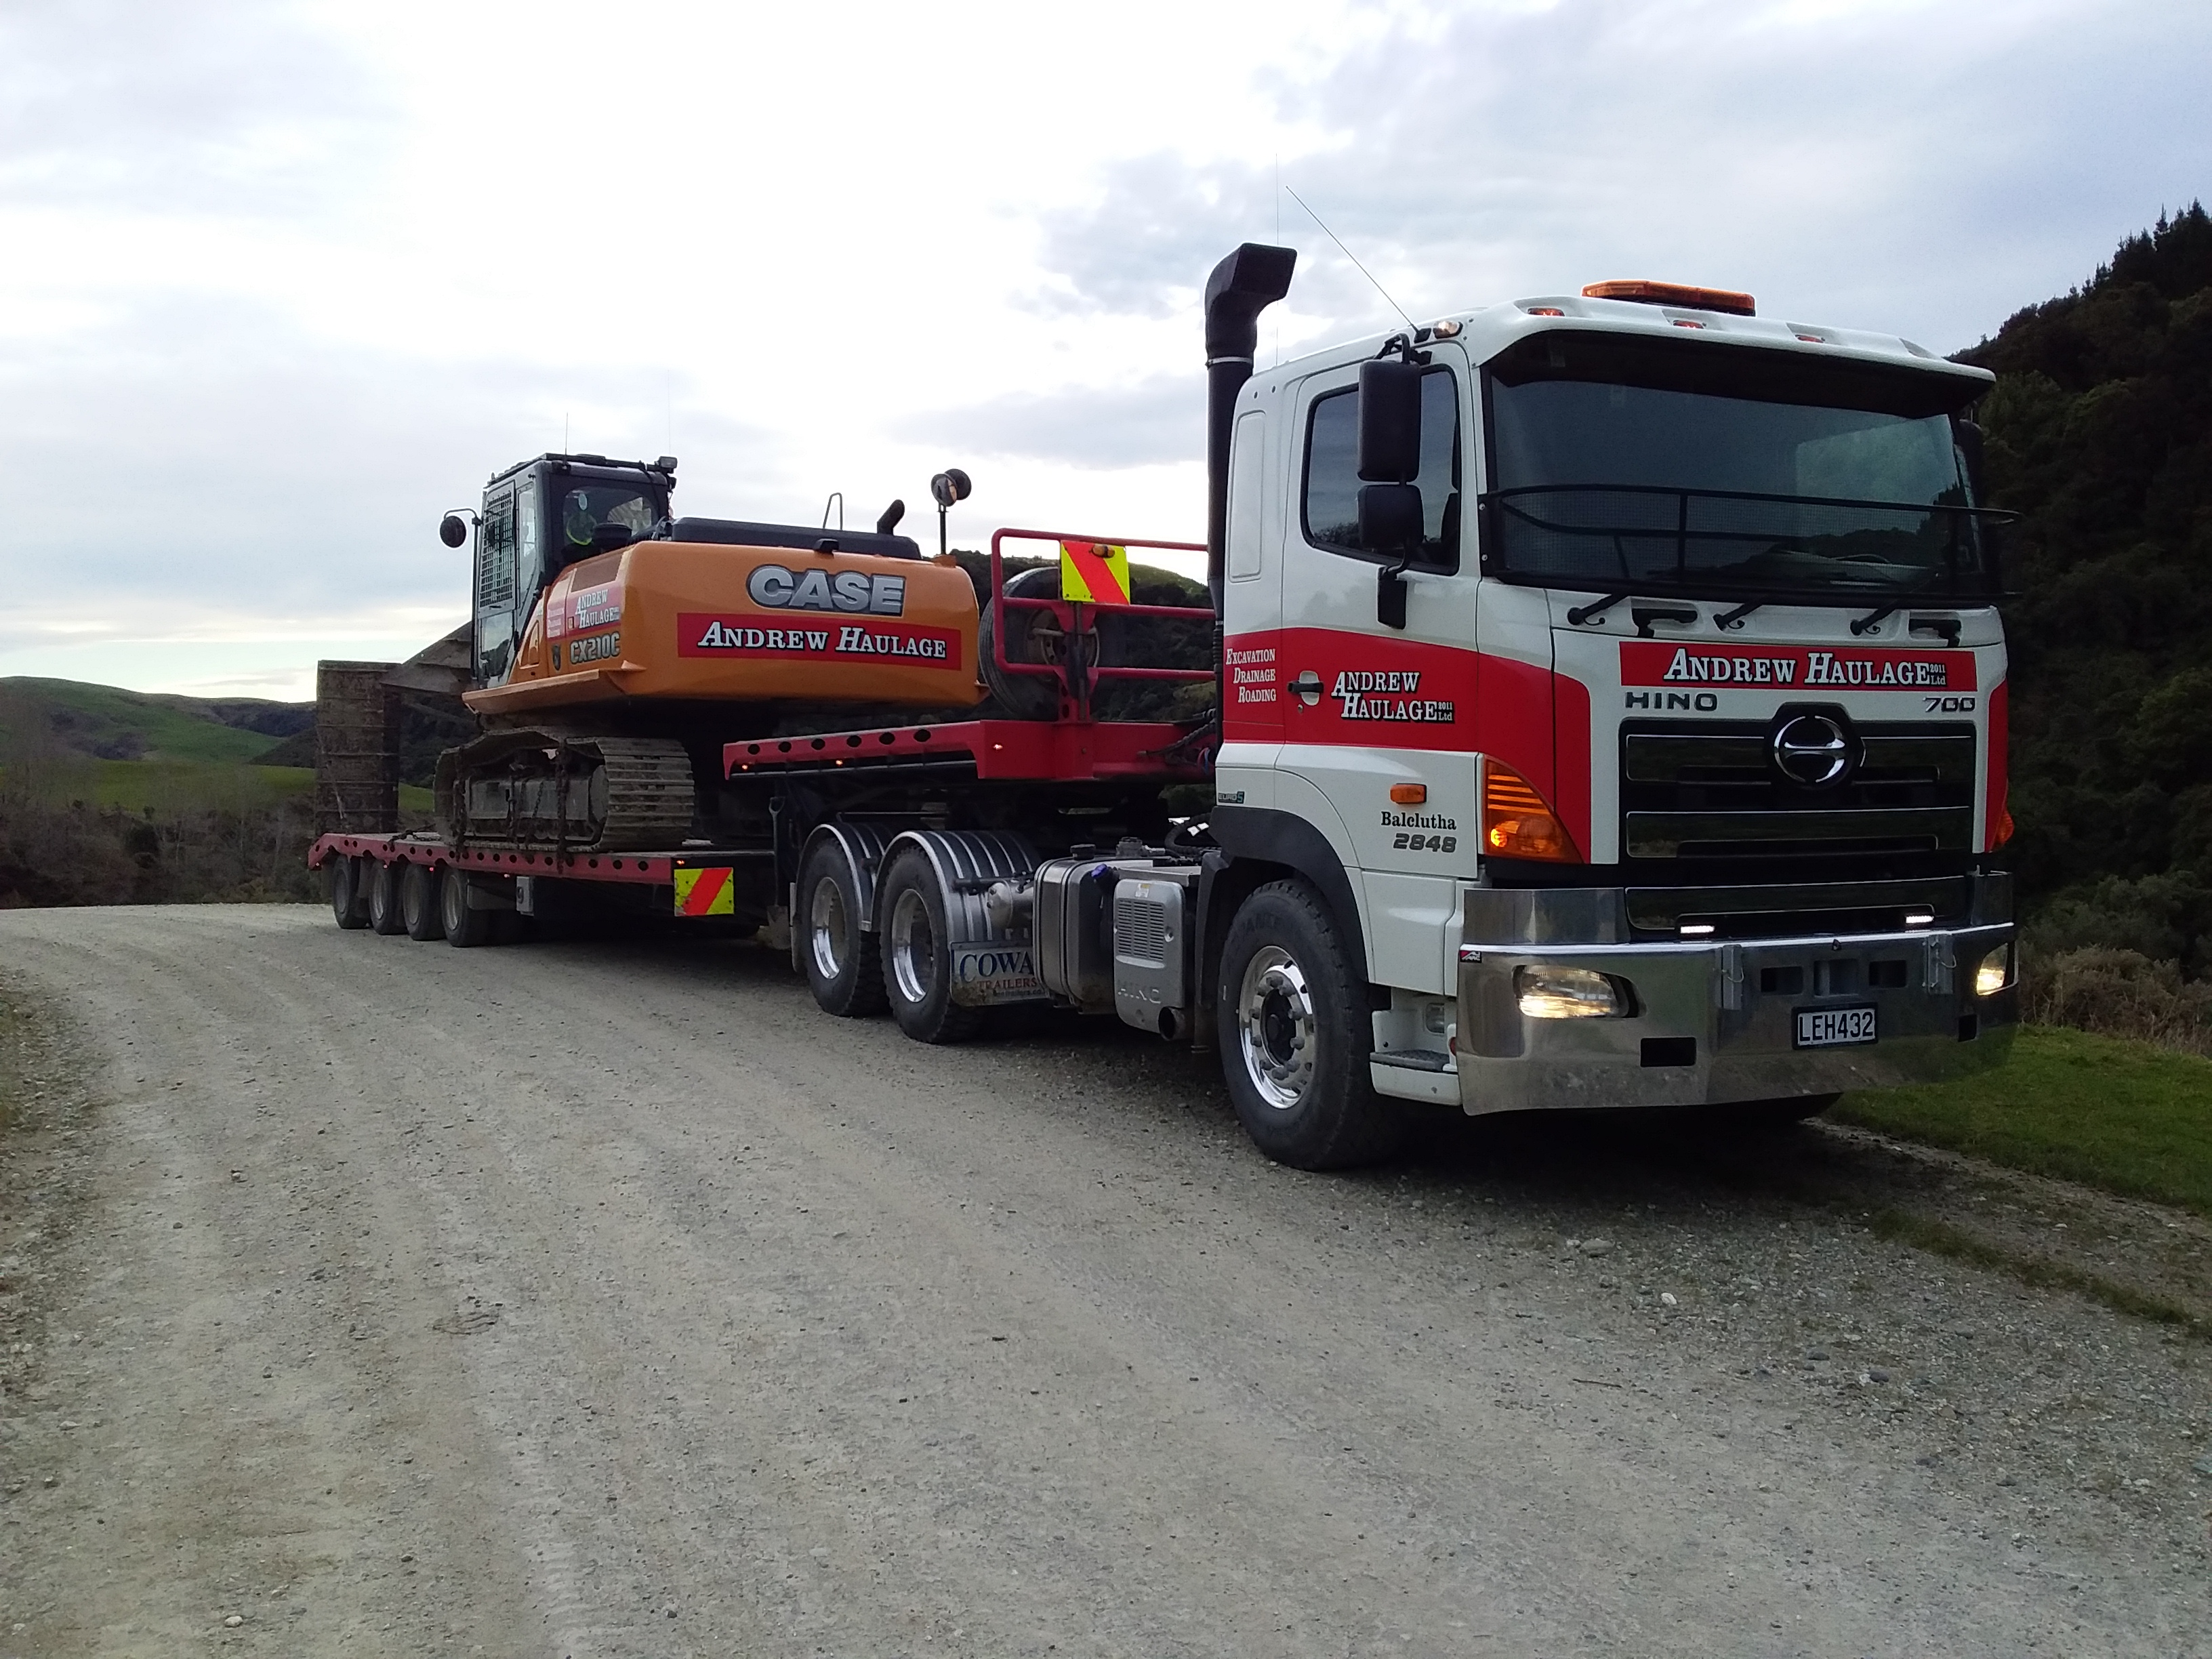 Andrew Haulage - 700 Series FS2848 Proshift Air Dana Rear Bogie - Hydraulic Retarder